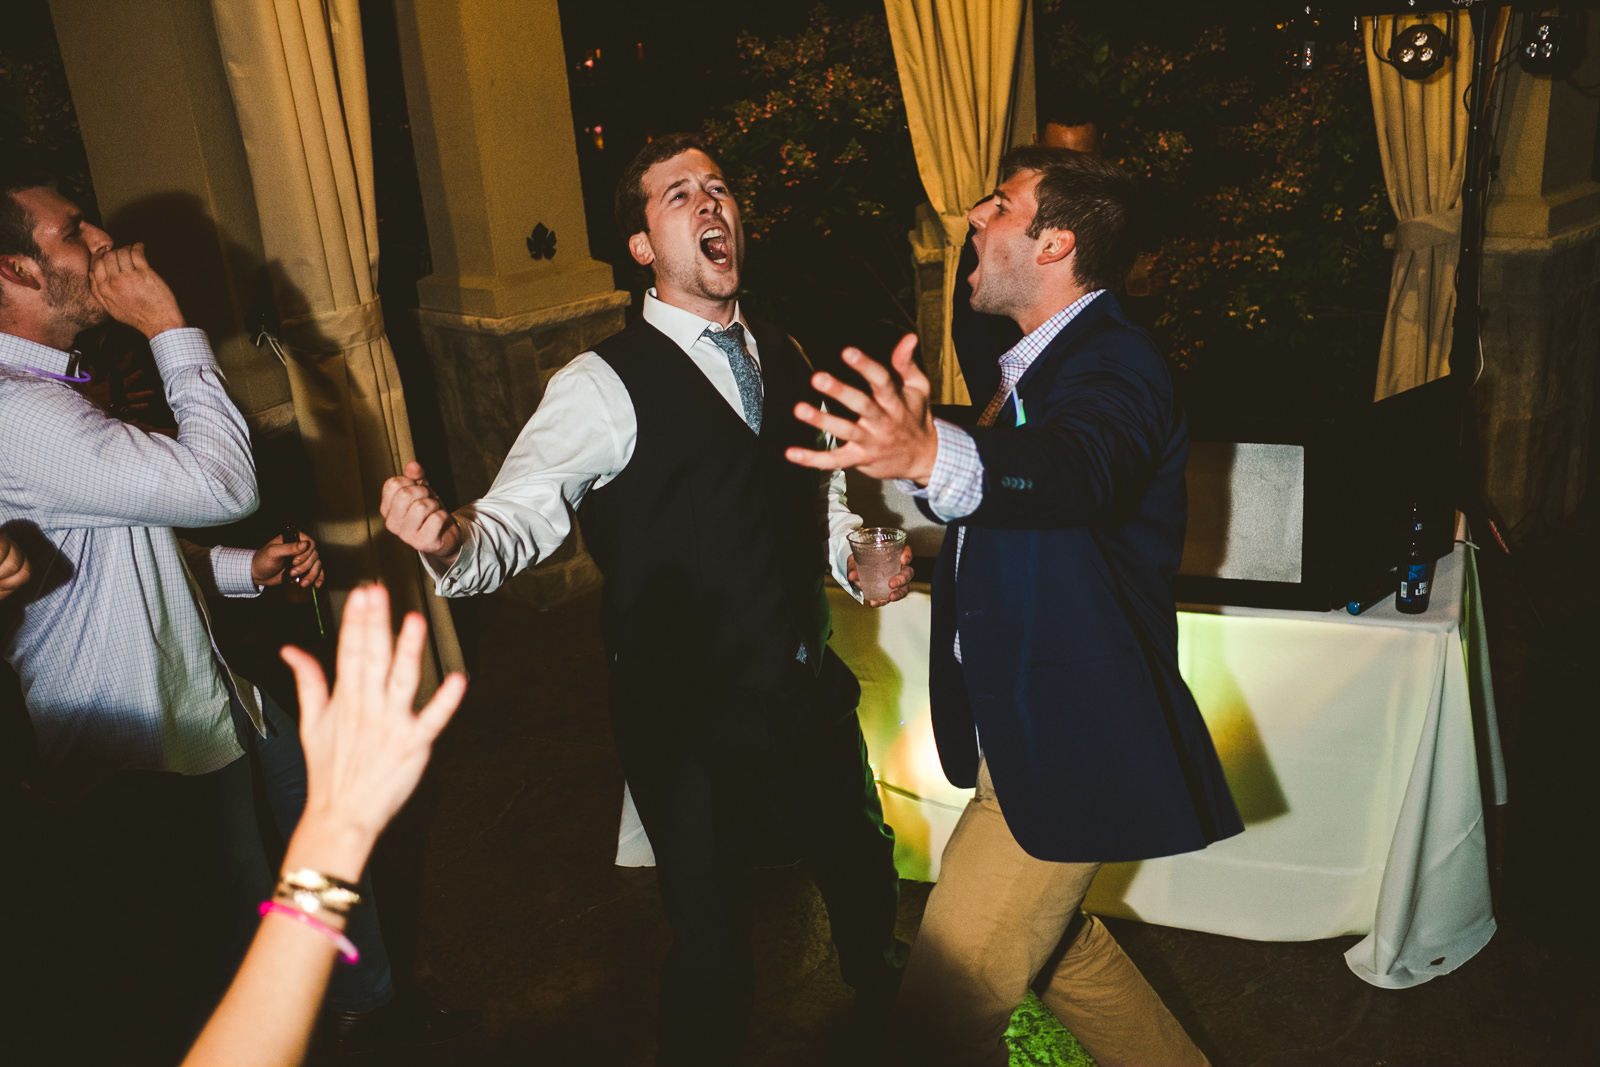 Groom Dances at Reception with Cleveland Ohio Destination and Wedding Photographers at Gervasi Vineyard